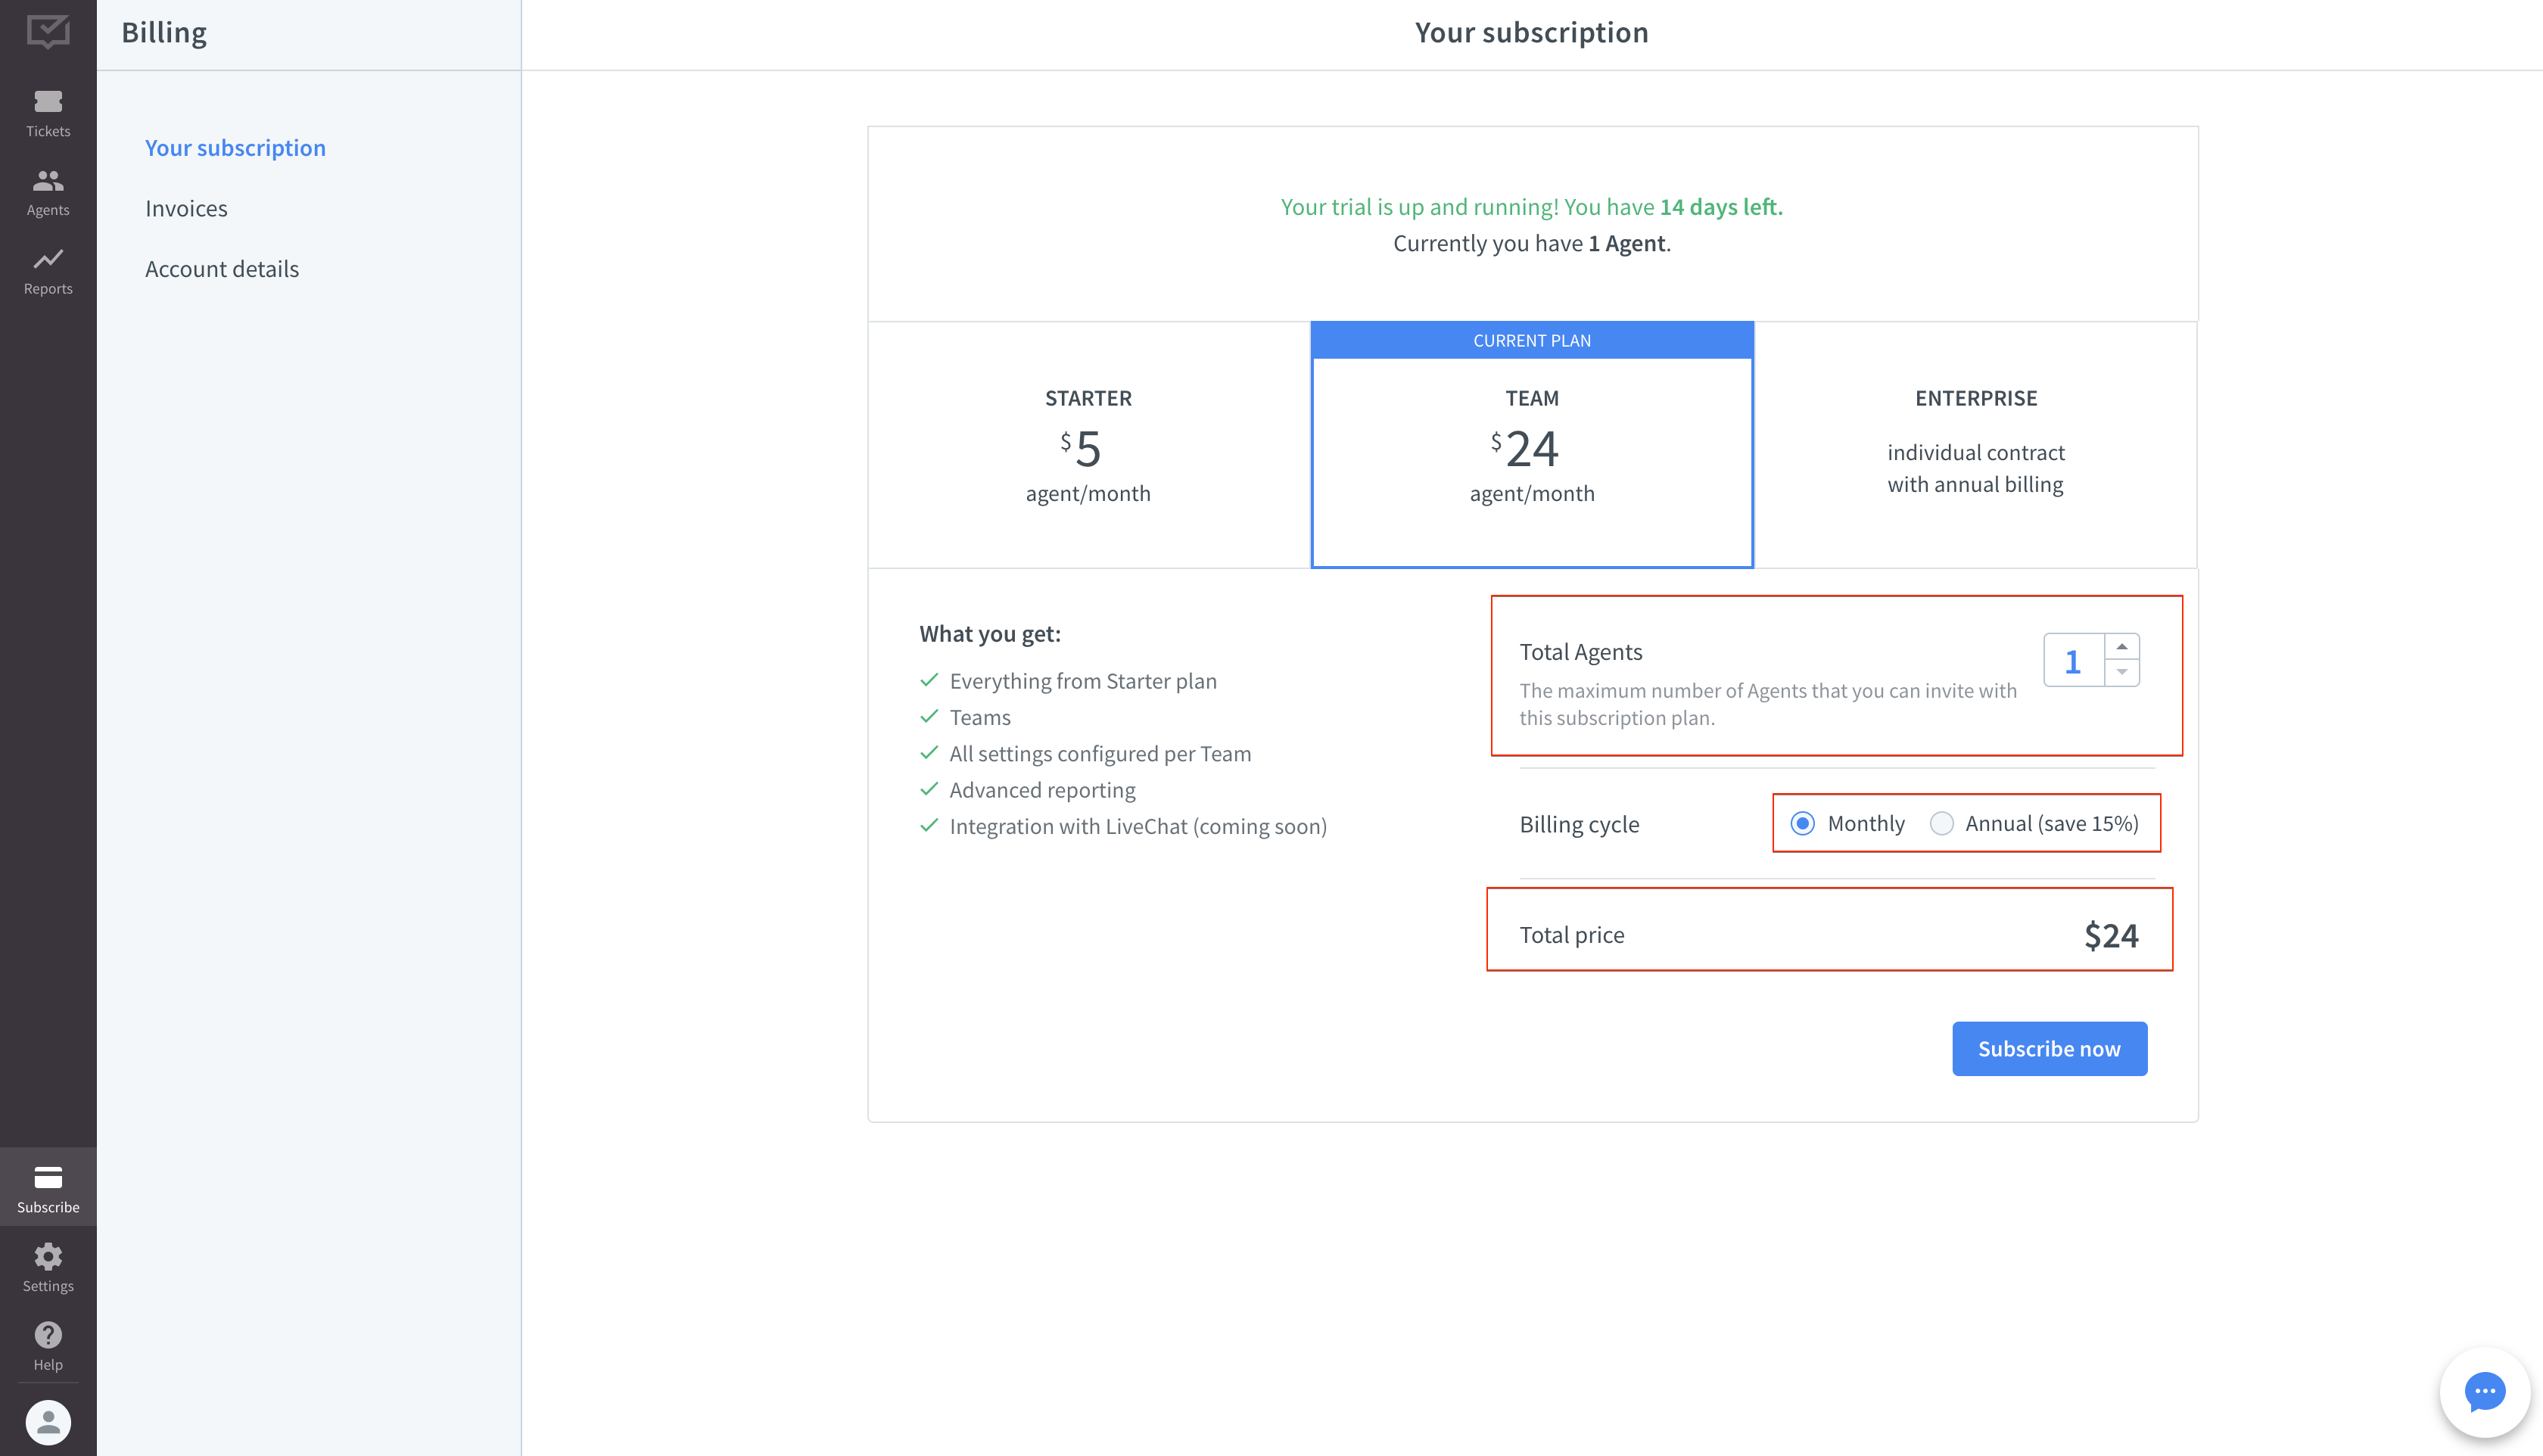 Your subscription details in HelpDesk